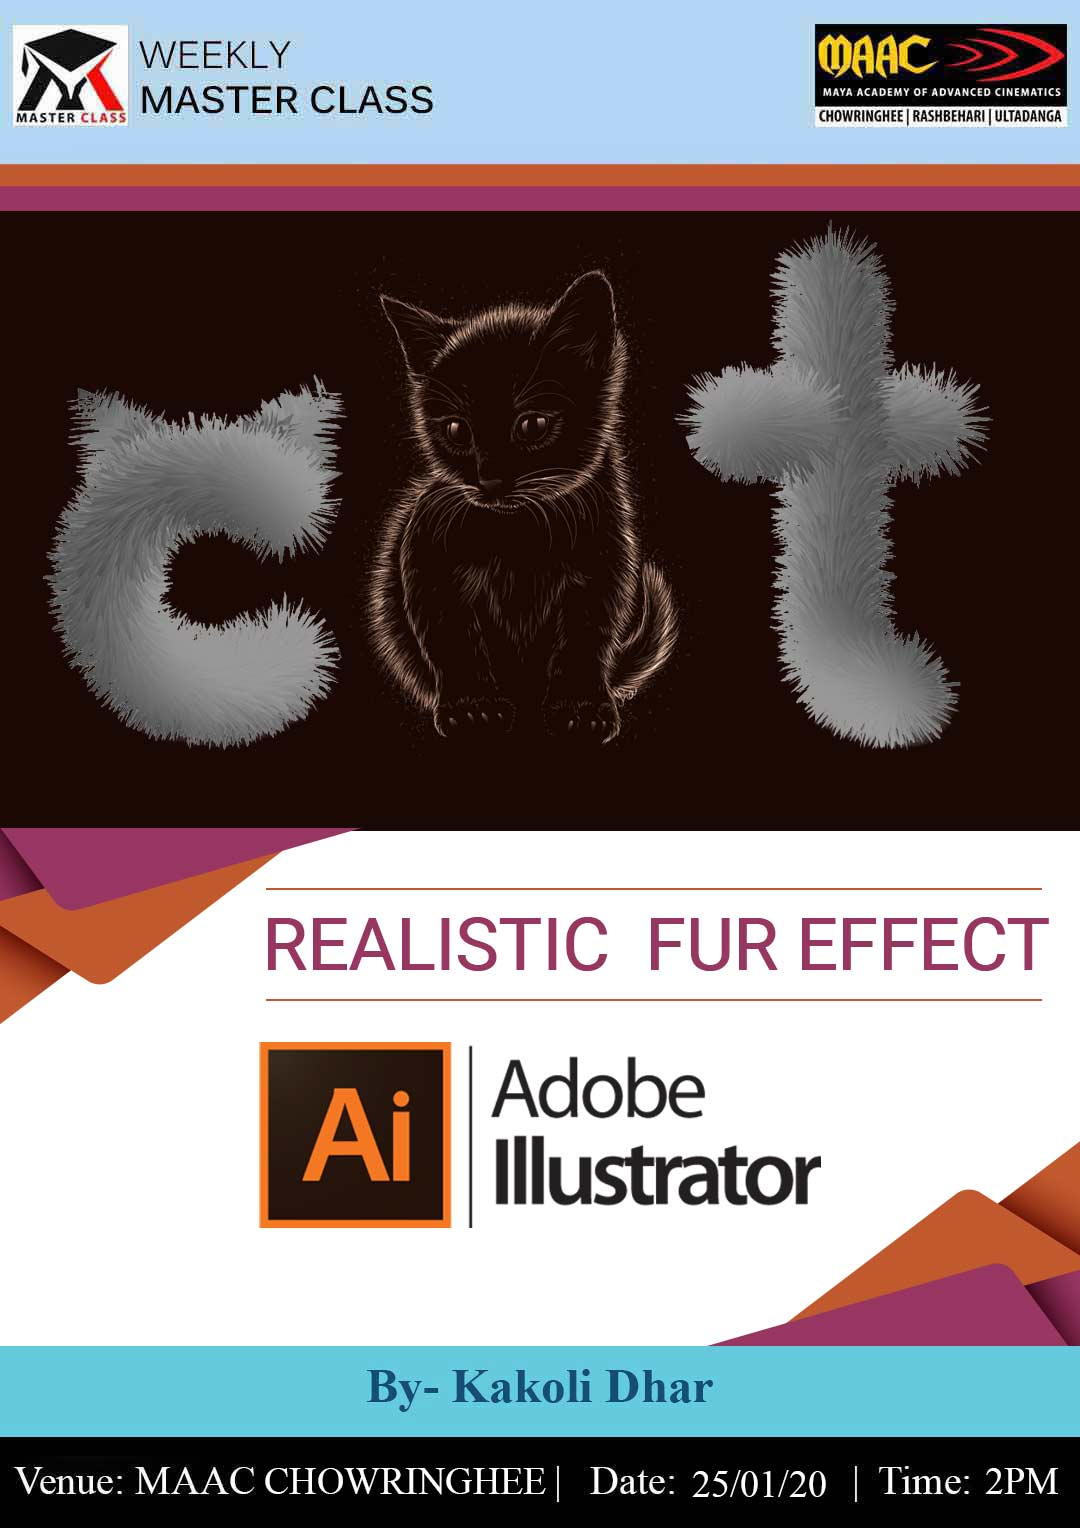 Weekly Master Class on Realistic Fur Effect